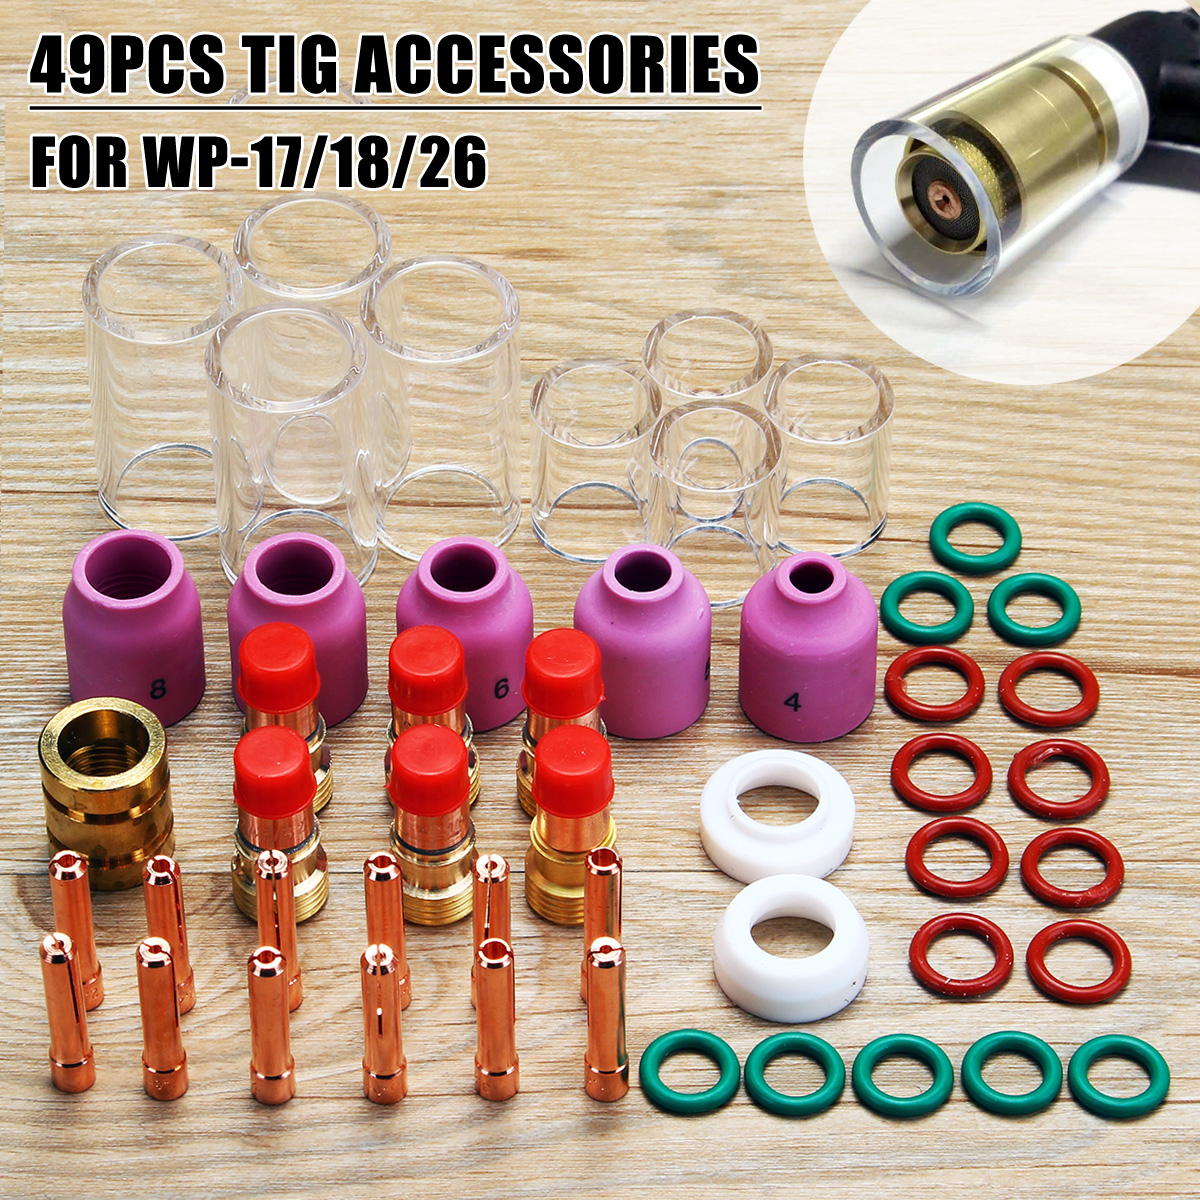 50Pcs TIG Welding Torch Stubby Gas Lens Glass Pyrex Cup Collect Body Nozzle Kit for WP-17/18/26 Series Welder Tool Accessory 17pcs tig welding torch stubby collet gas lens glass nozzle pryex cup kit with heat resistant o rings for wp 17 18 26 series